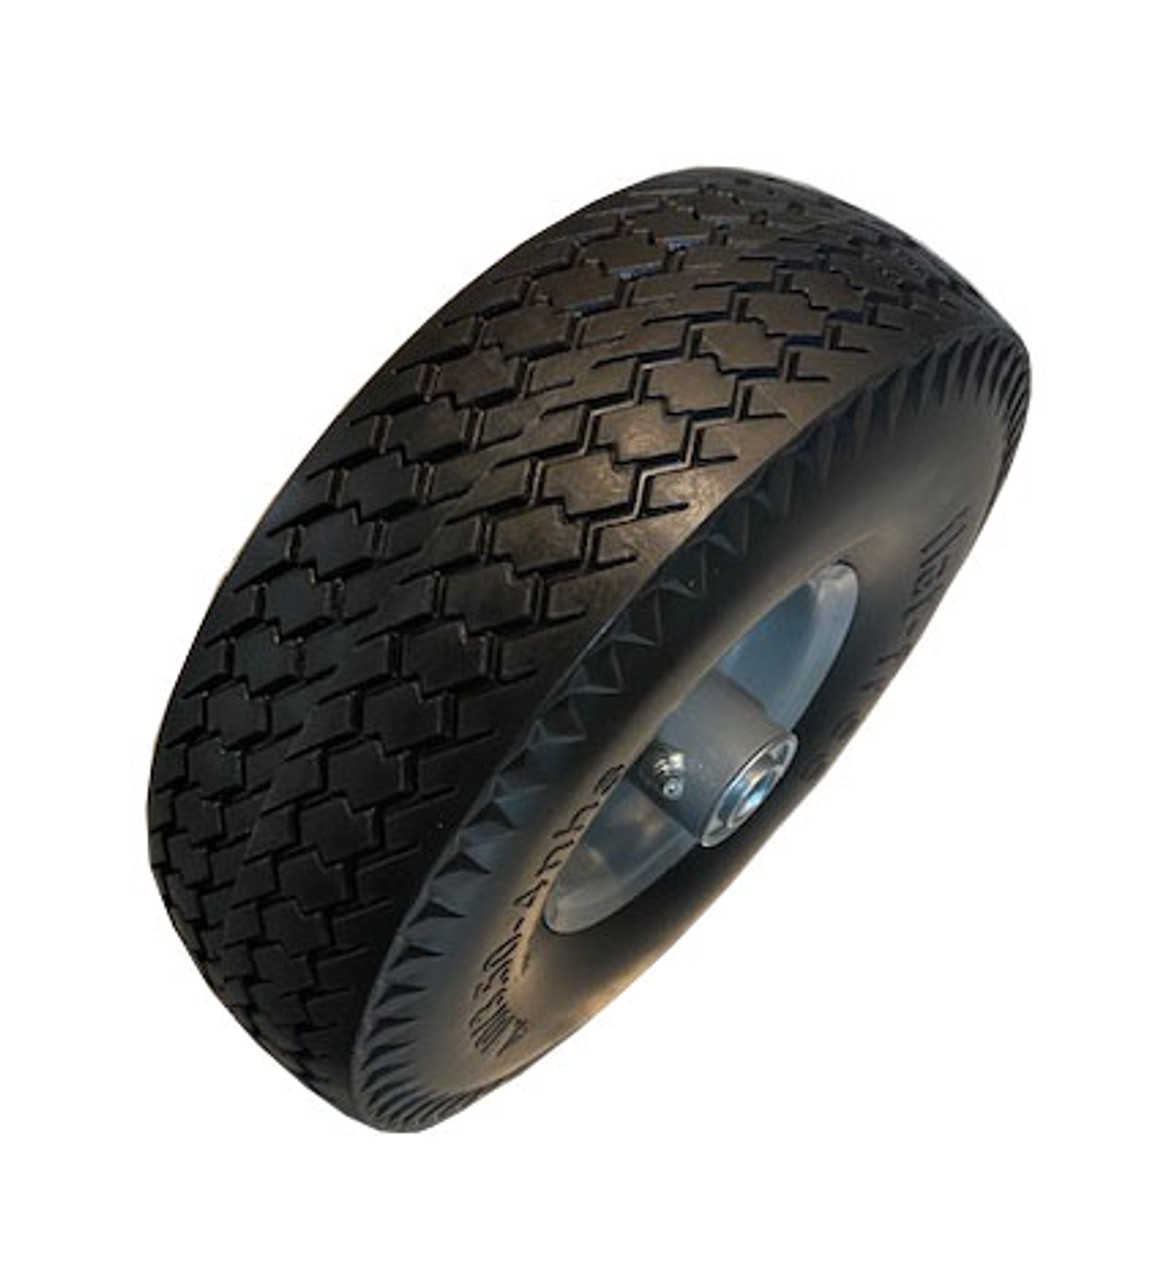 """P/N KTS9010: Replacement Kart Stand Tire/Wheel, 10"""", FLAT FREE"""